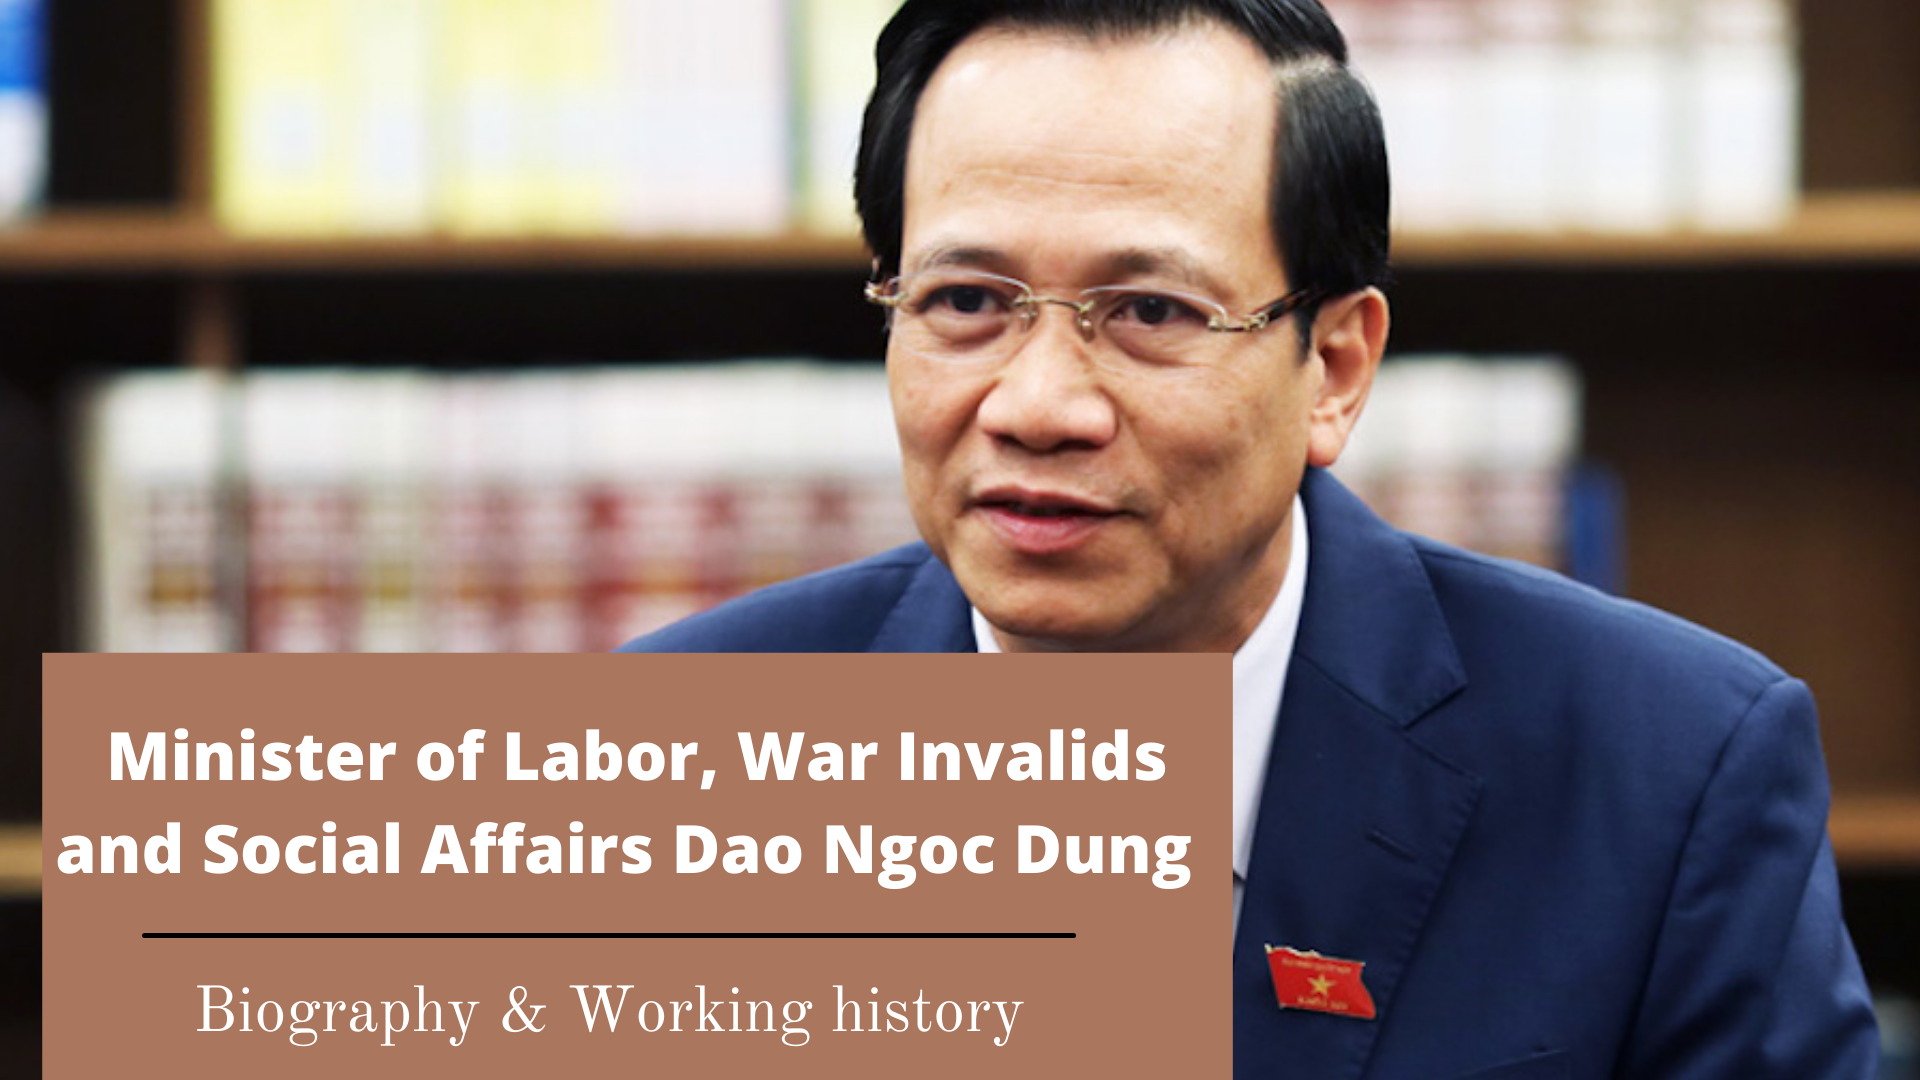 Biography of Minister of Labor, War Invalids and Social Affairs Dao Ngoc Dung: Positions and Working History